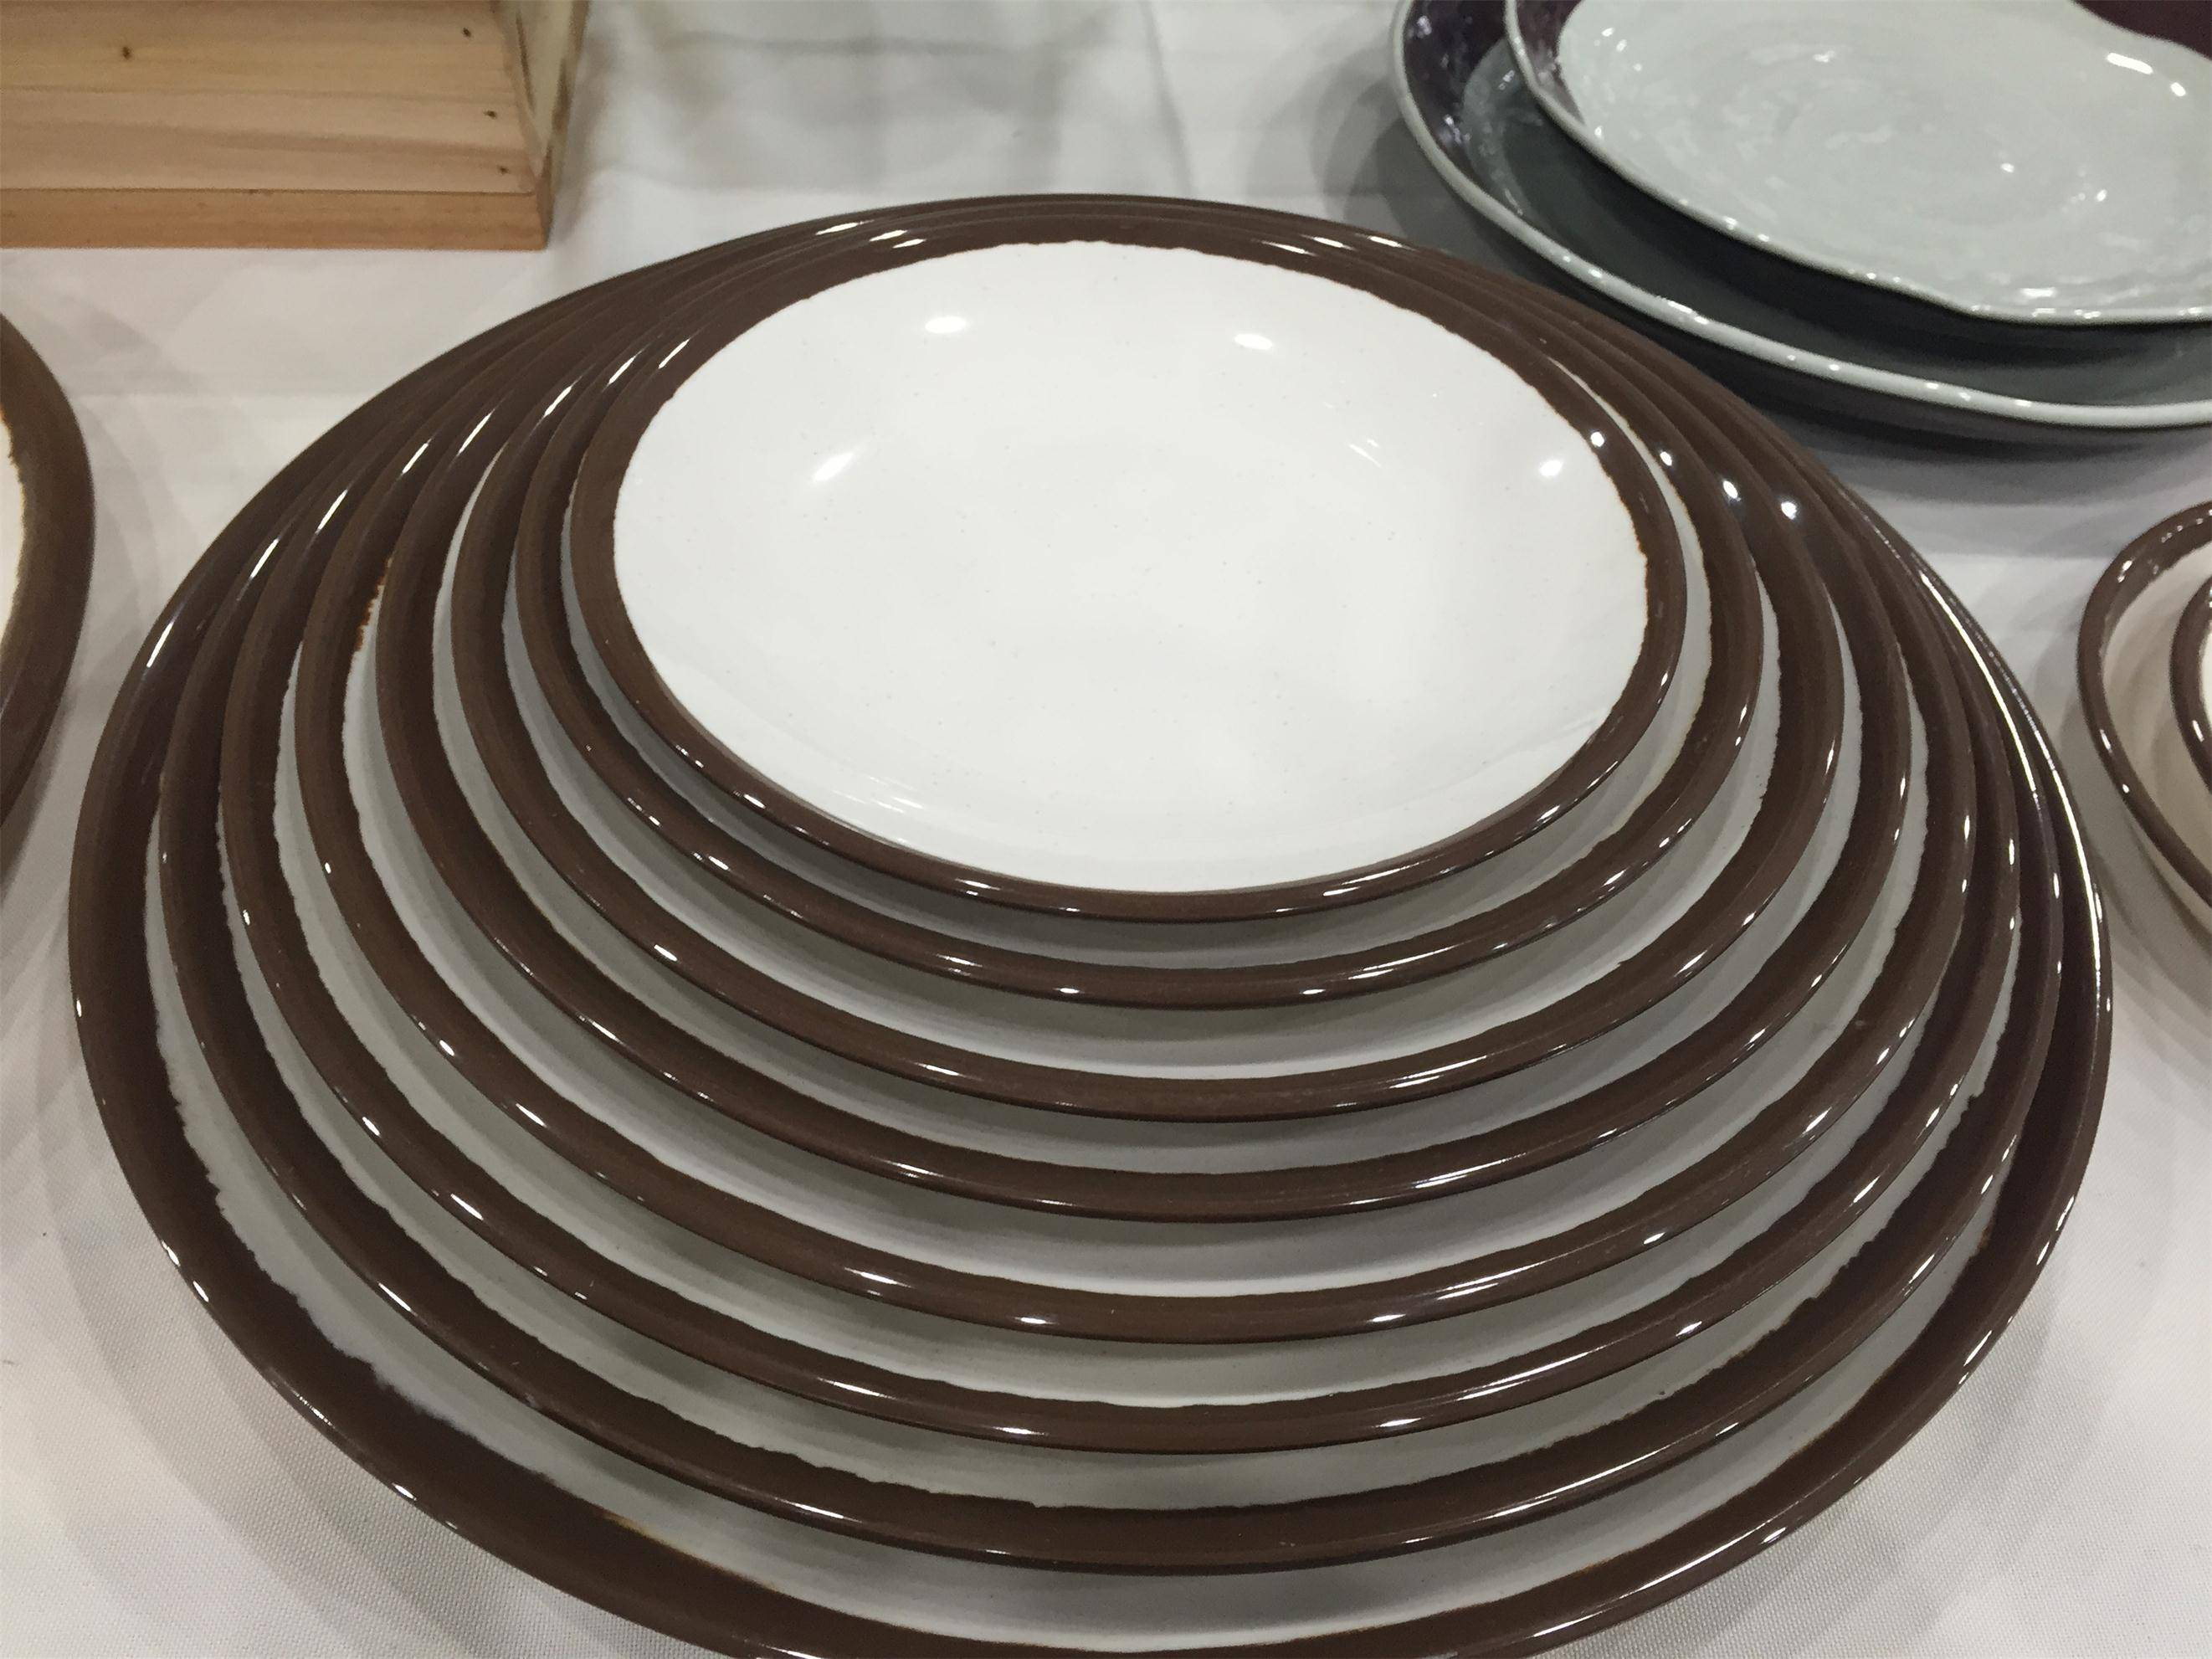 hot sale high quality roud plate melamine plate with various of demension